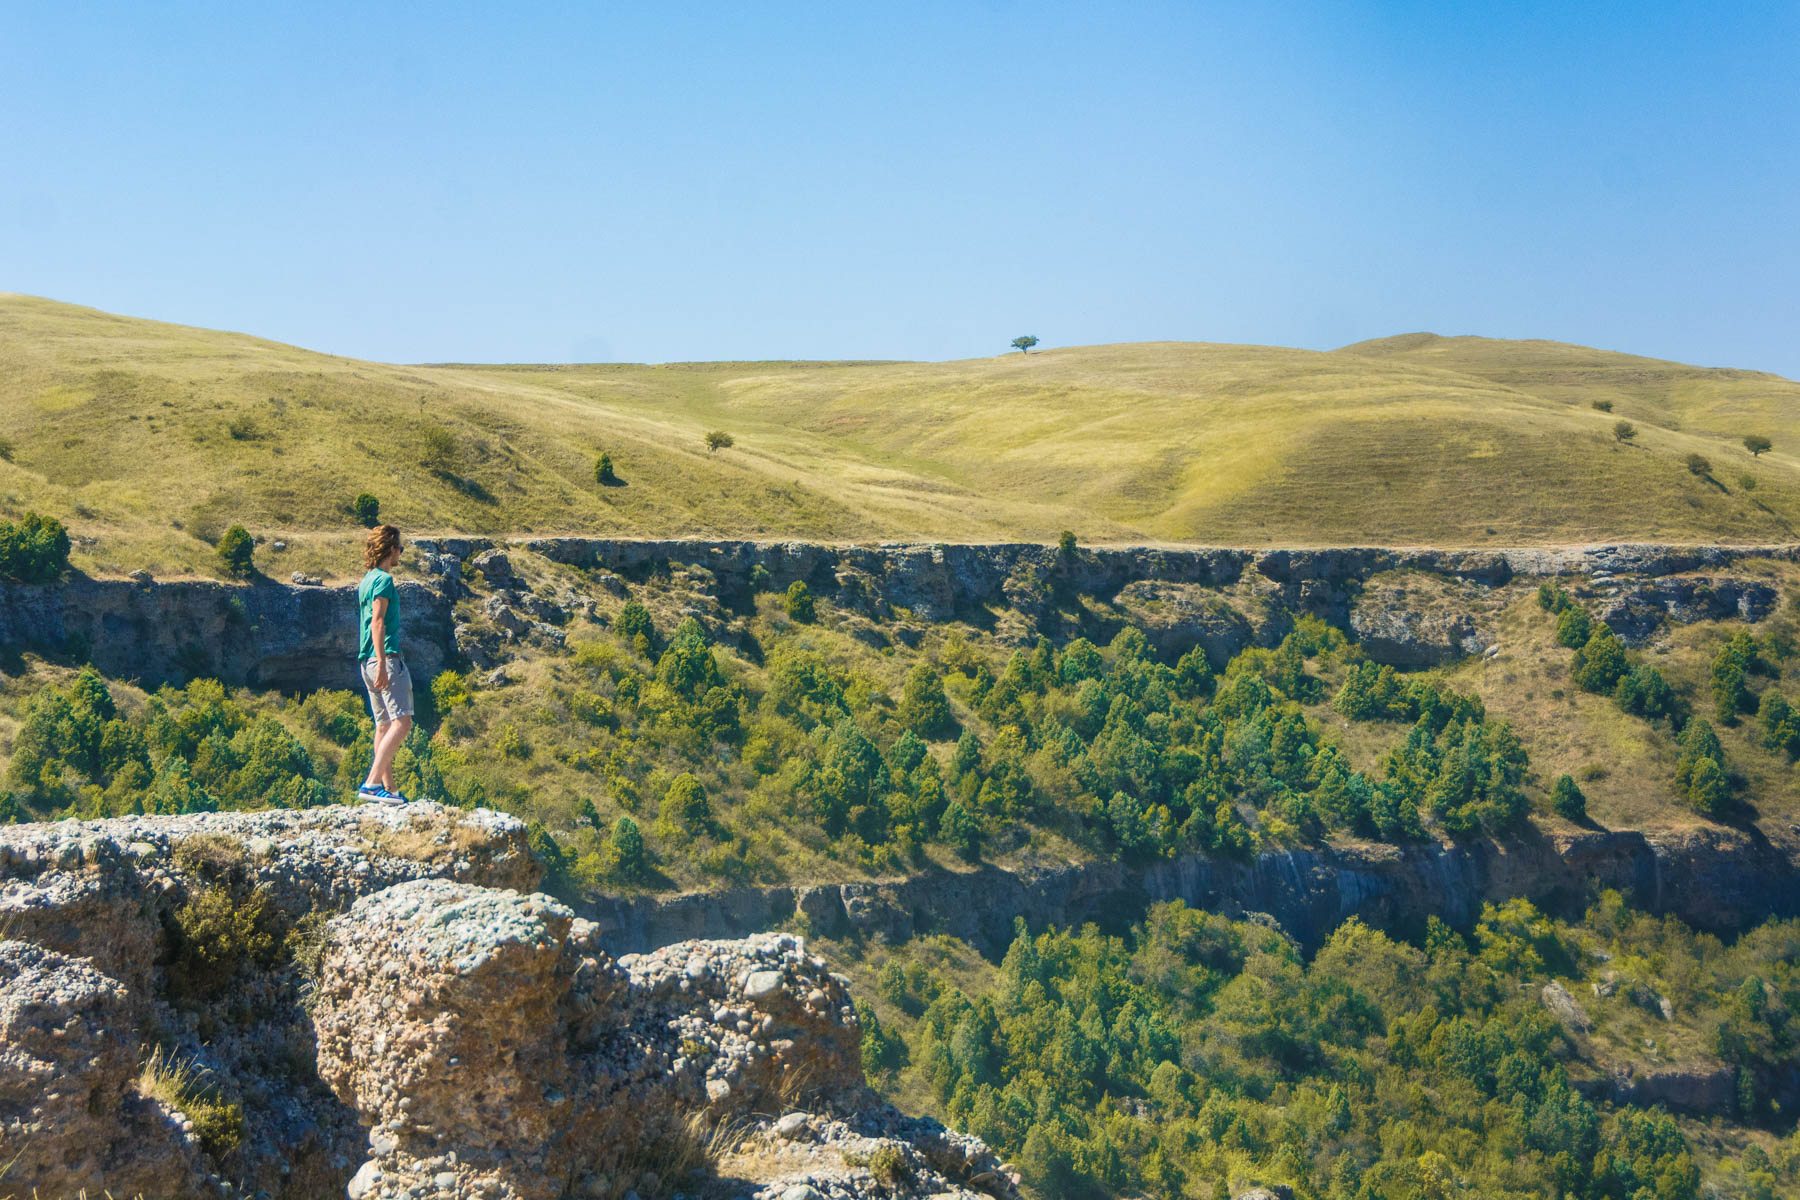 Looking over the landscape at Aksu park in Kazakhstan - Lost With Purpose